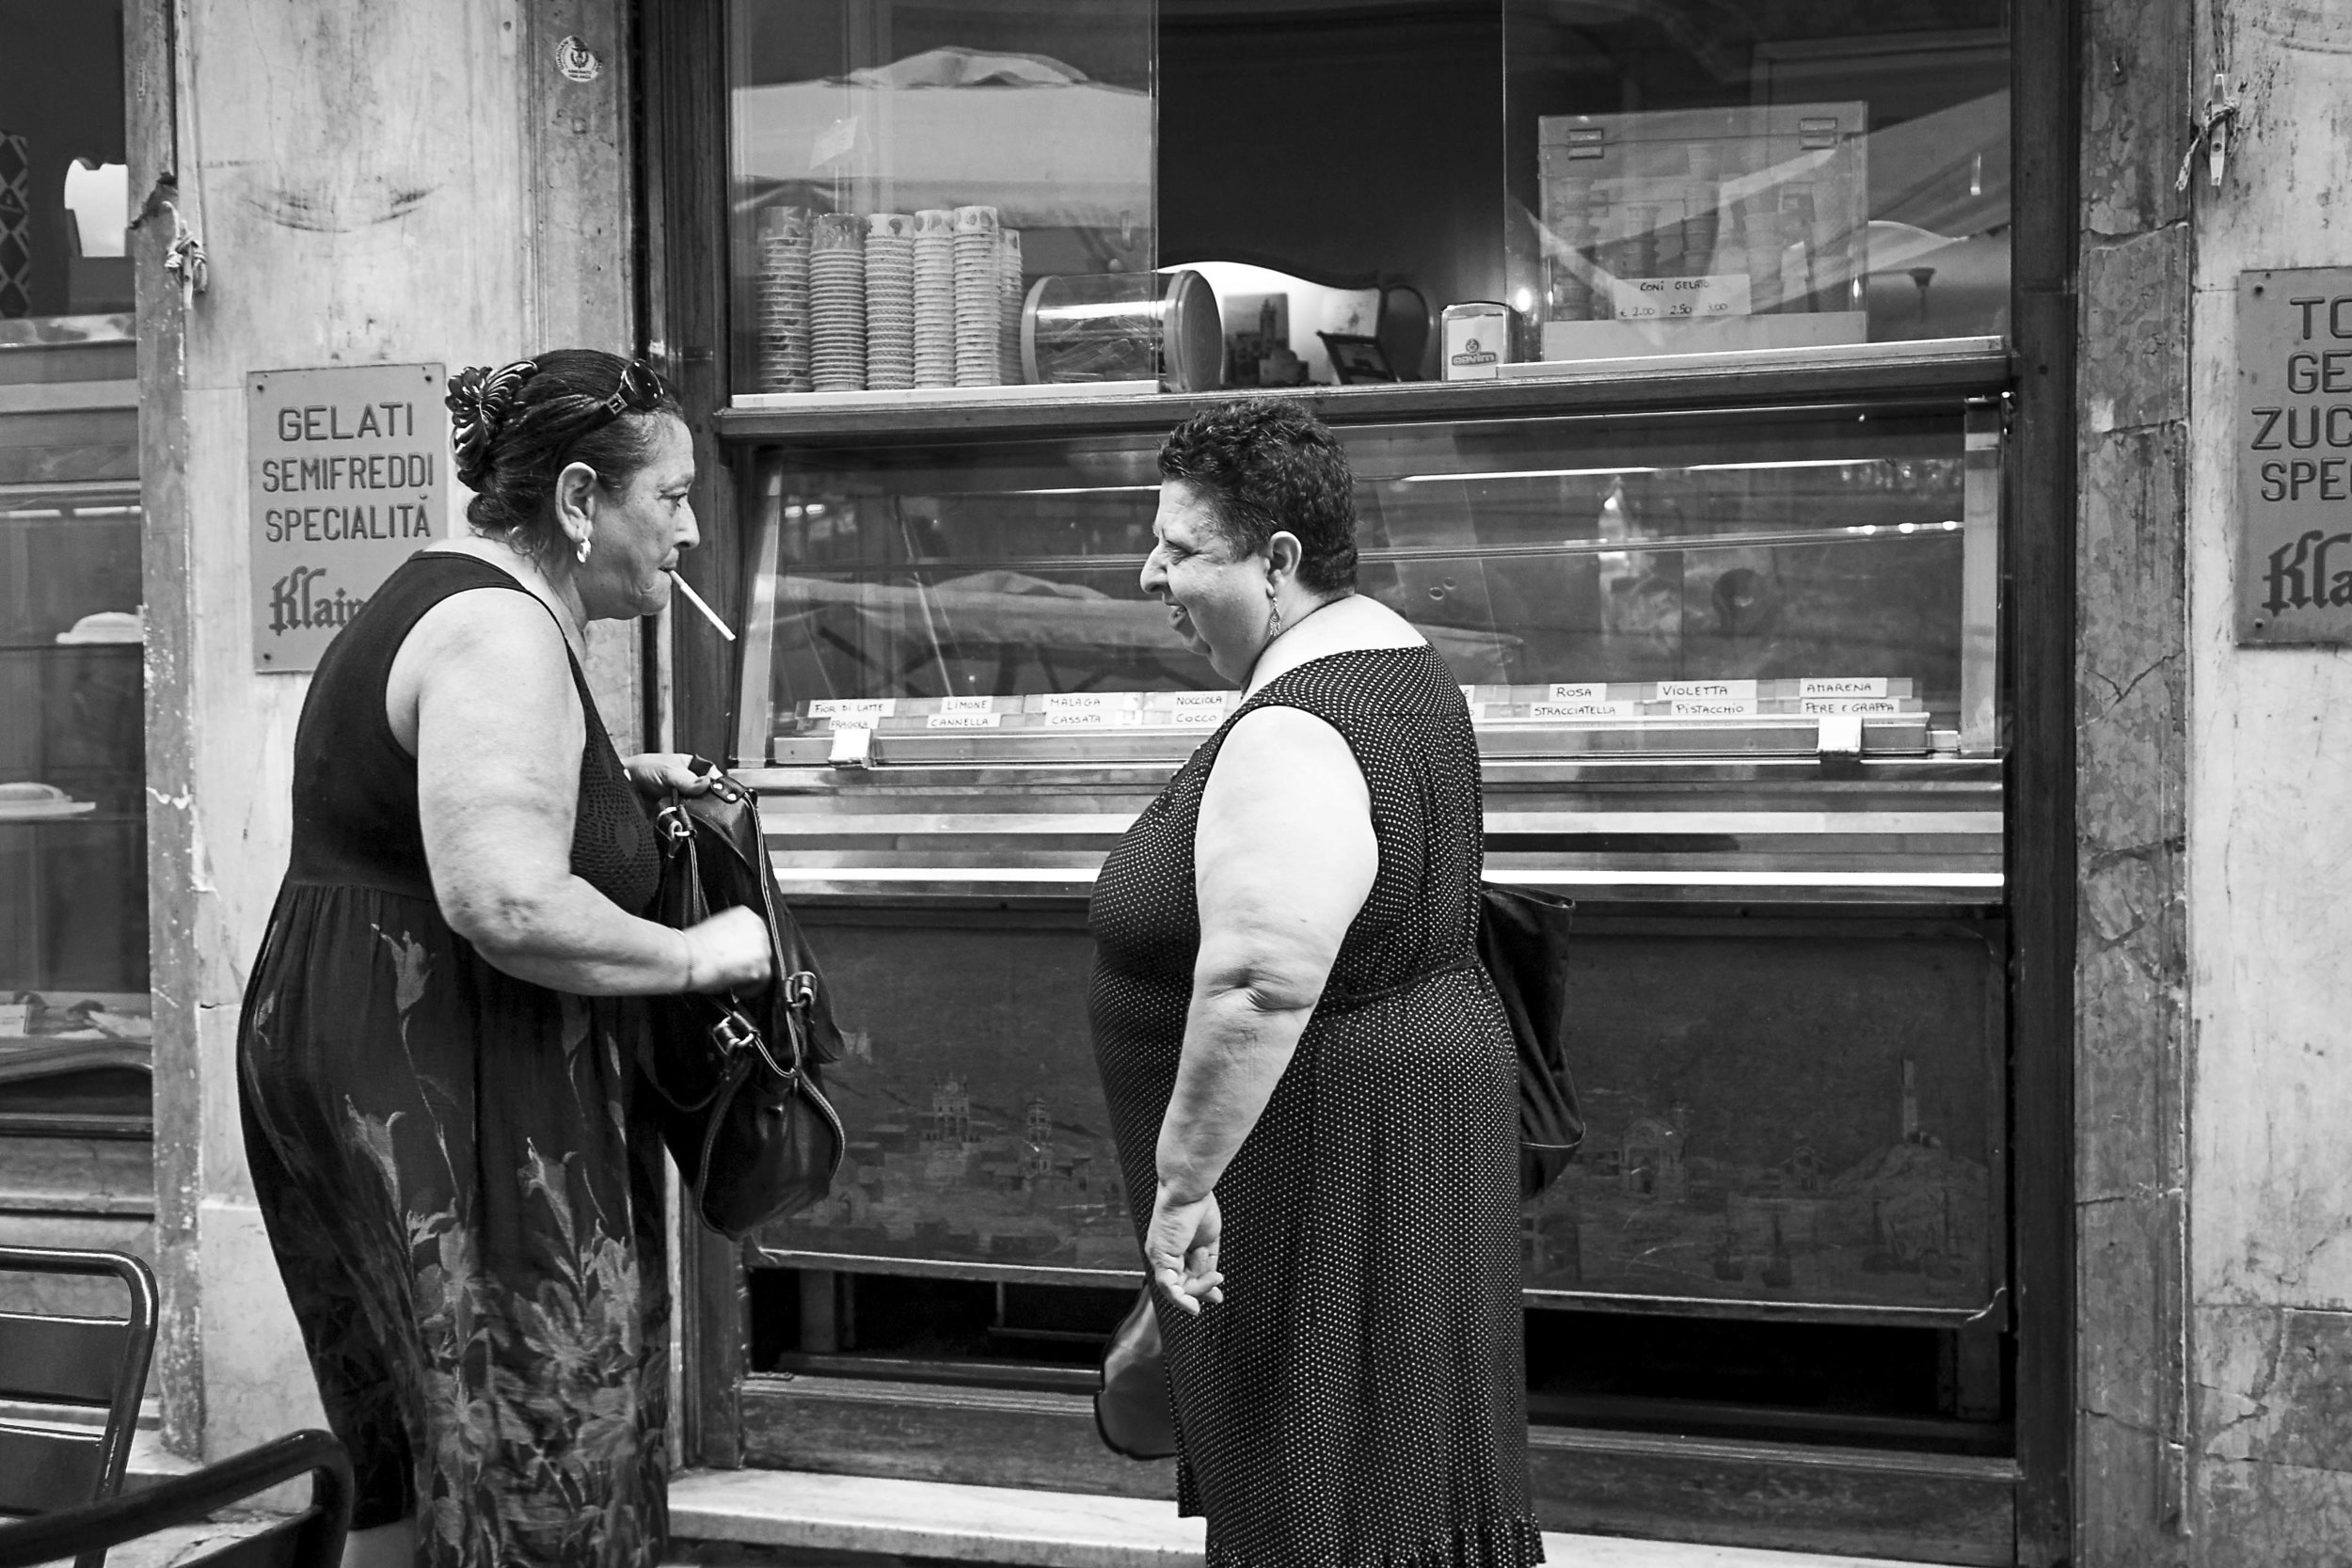 Some locals enjoy a smoke after their morning cafe.